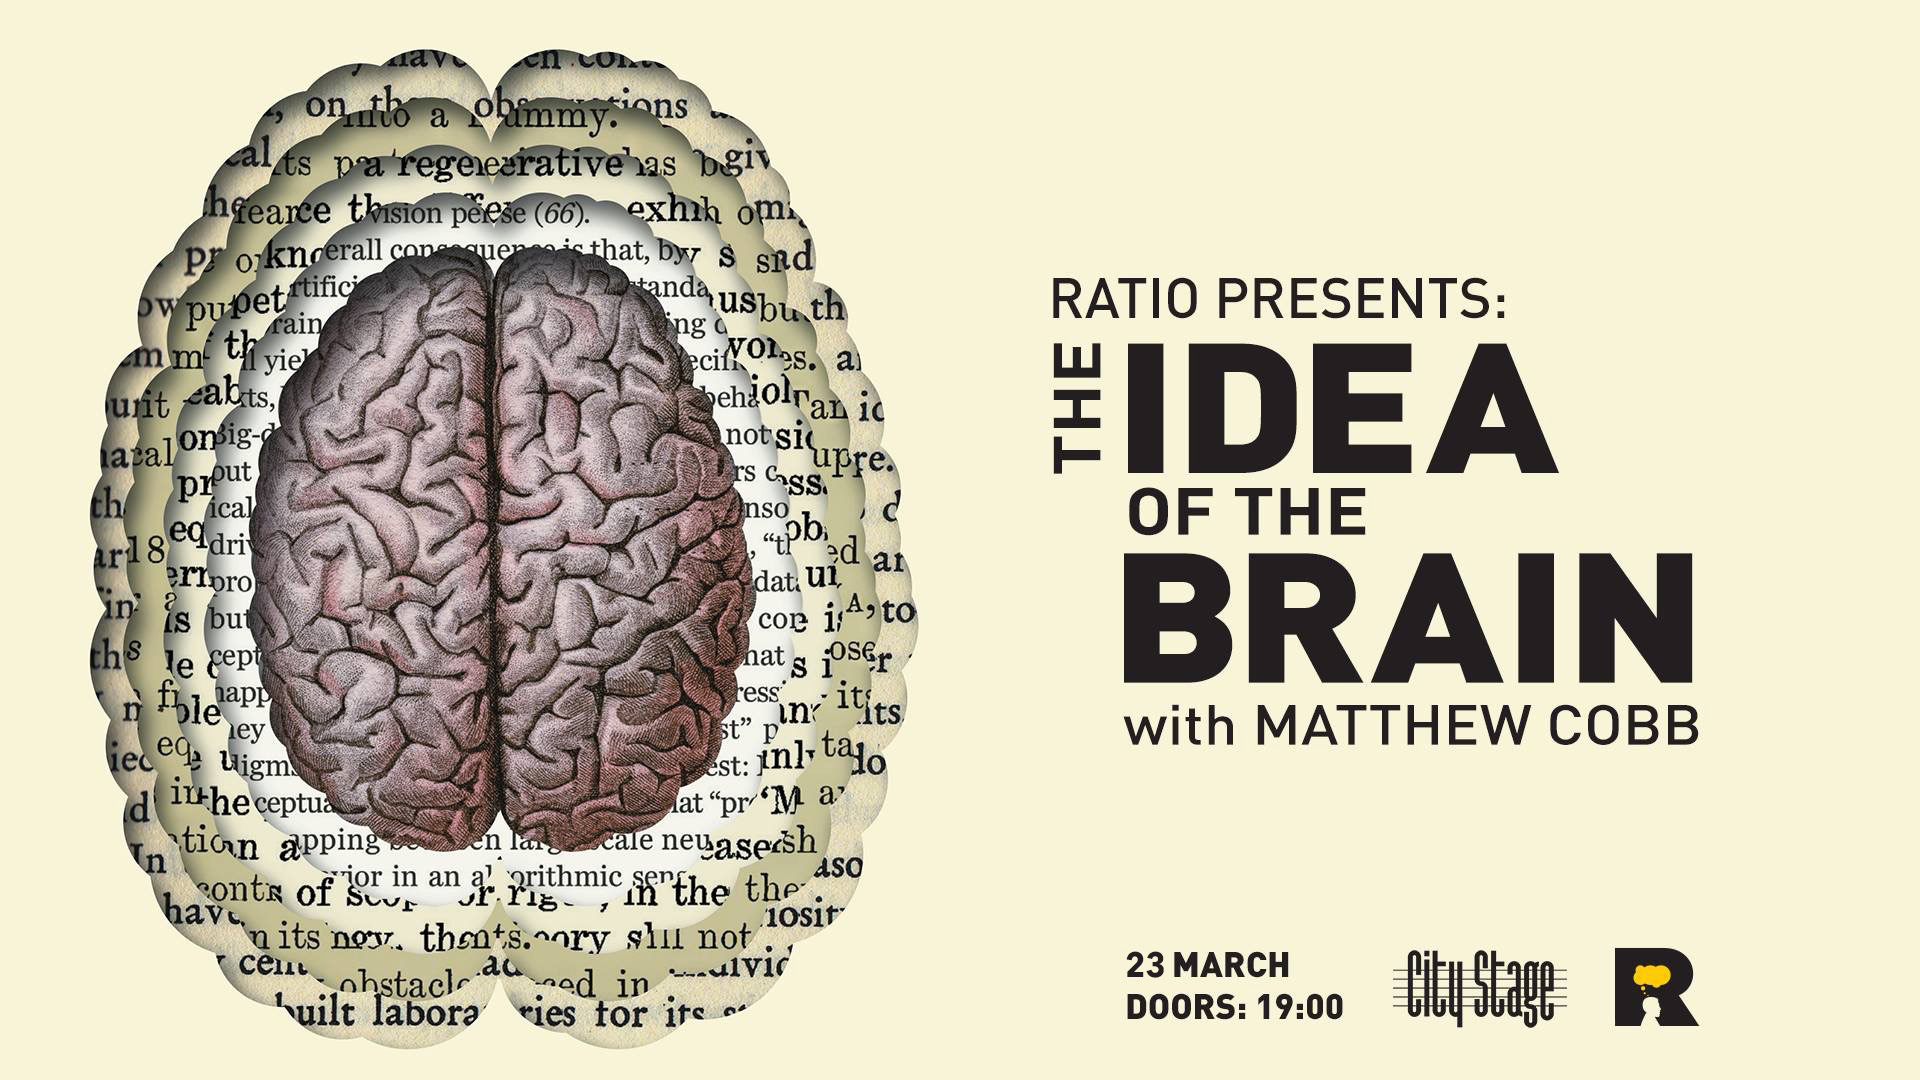 Ratio presents: The Idea of the Brain (23.03)